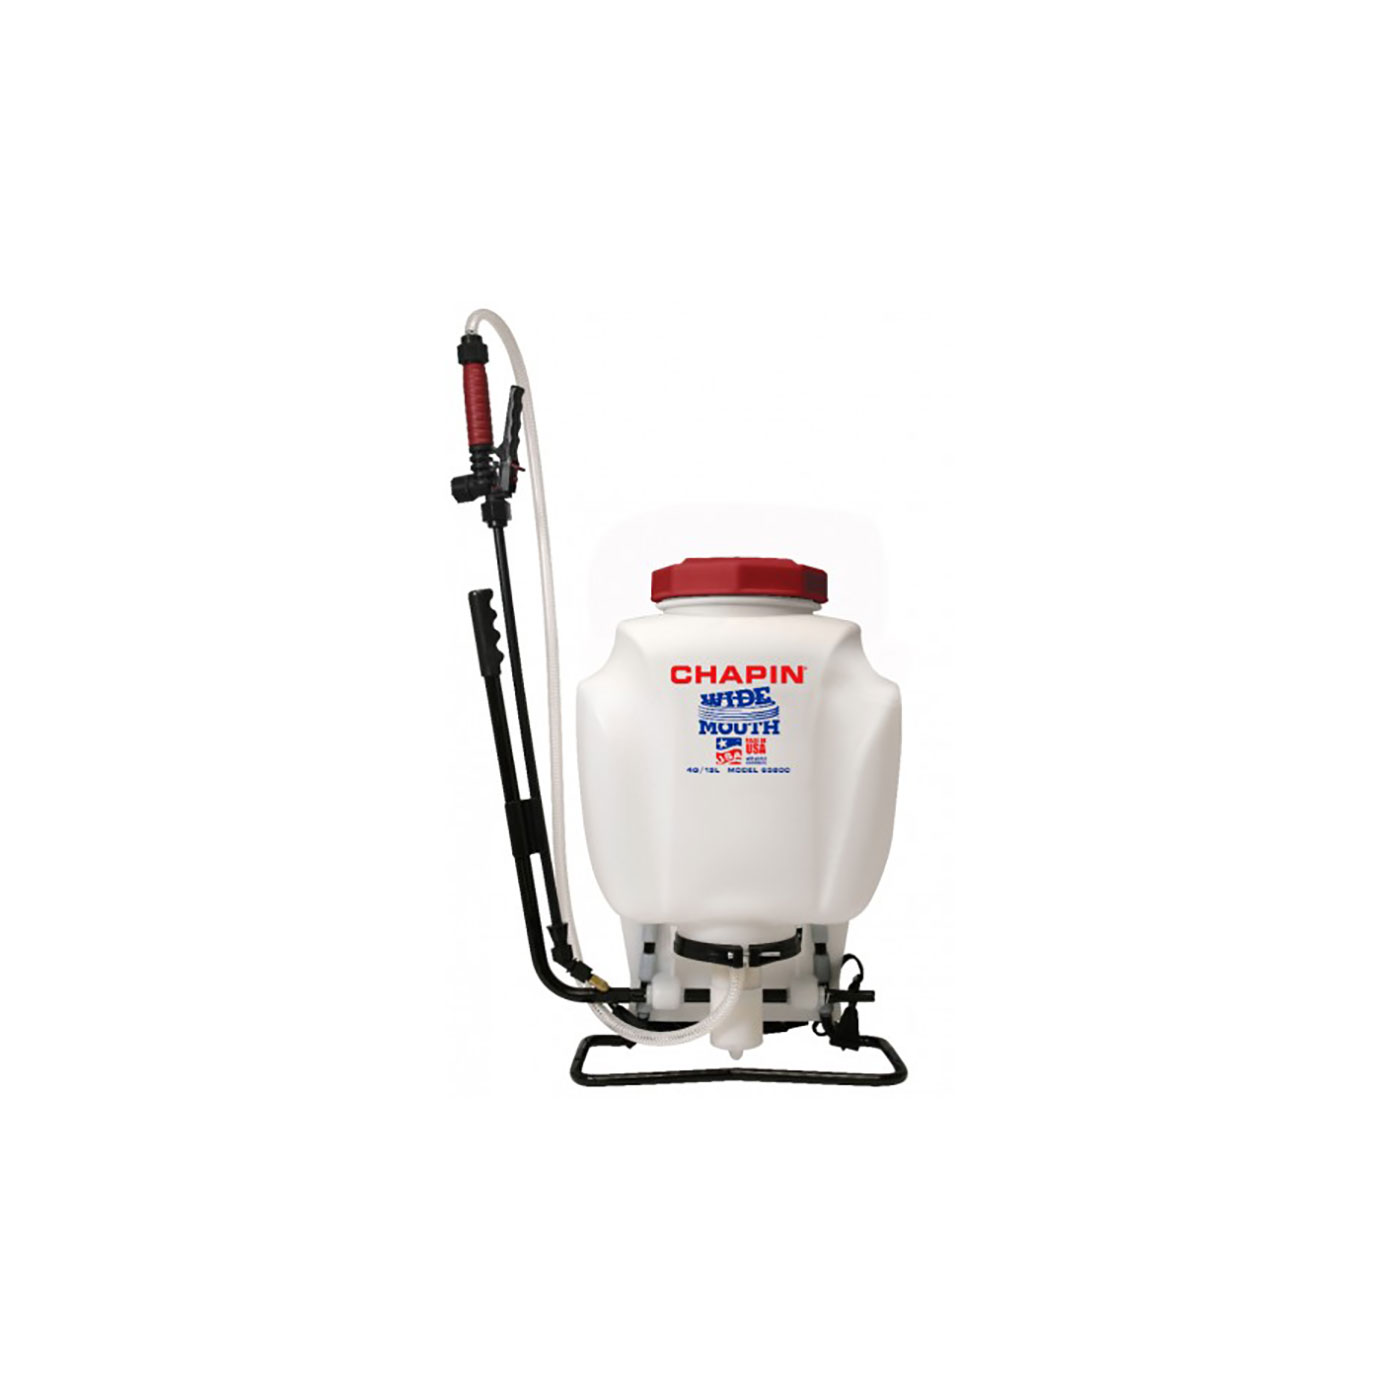 Wide Mouth Backpack Sprayer - 4G/15L